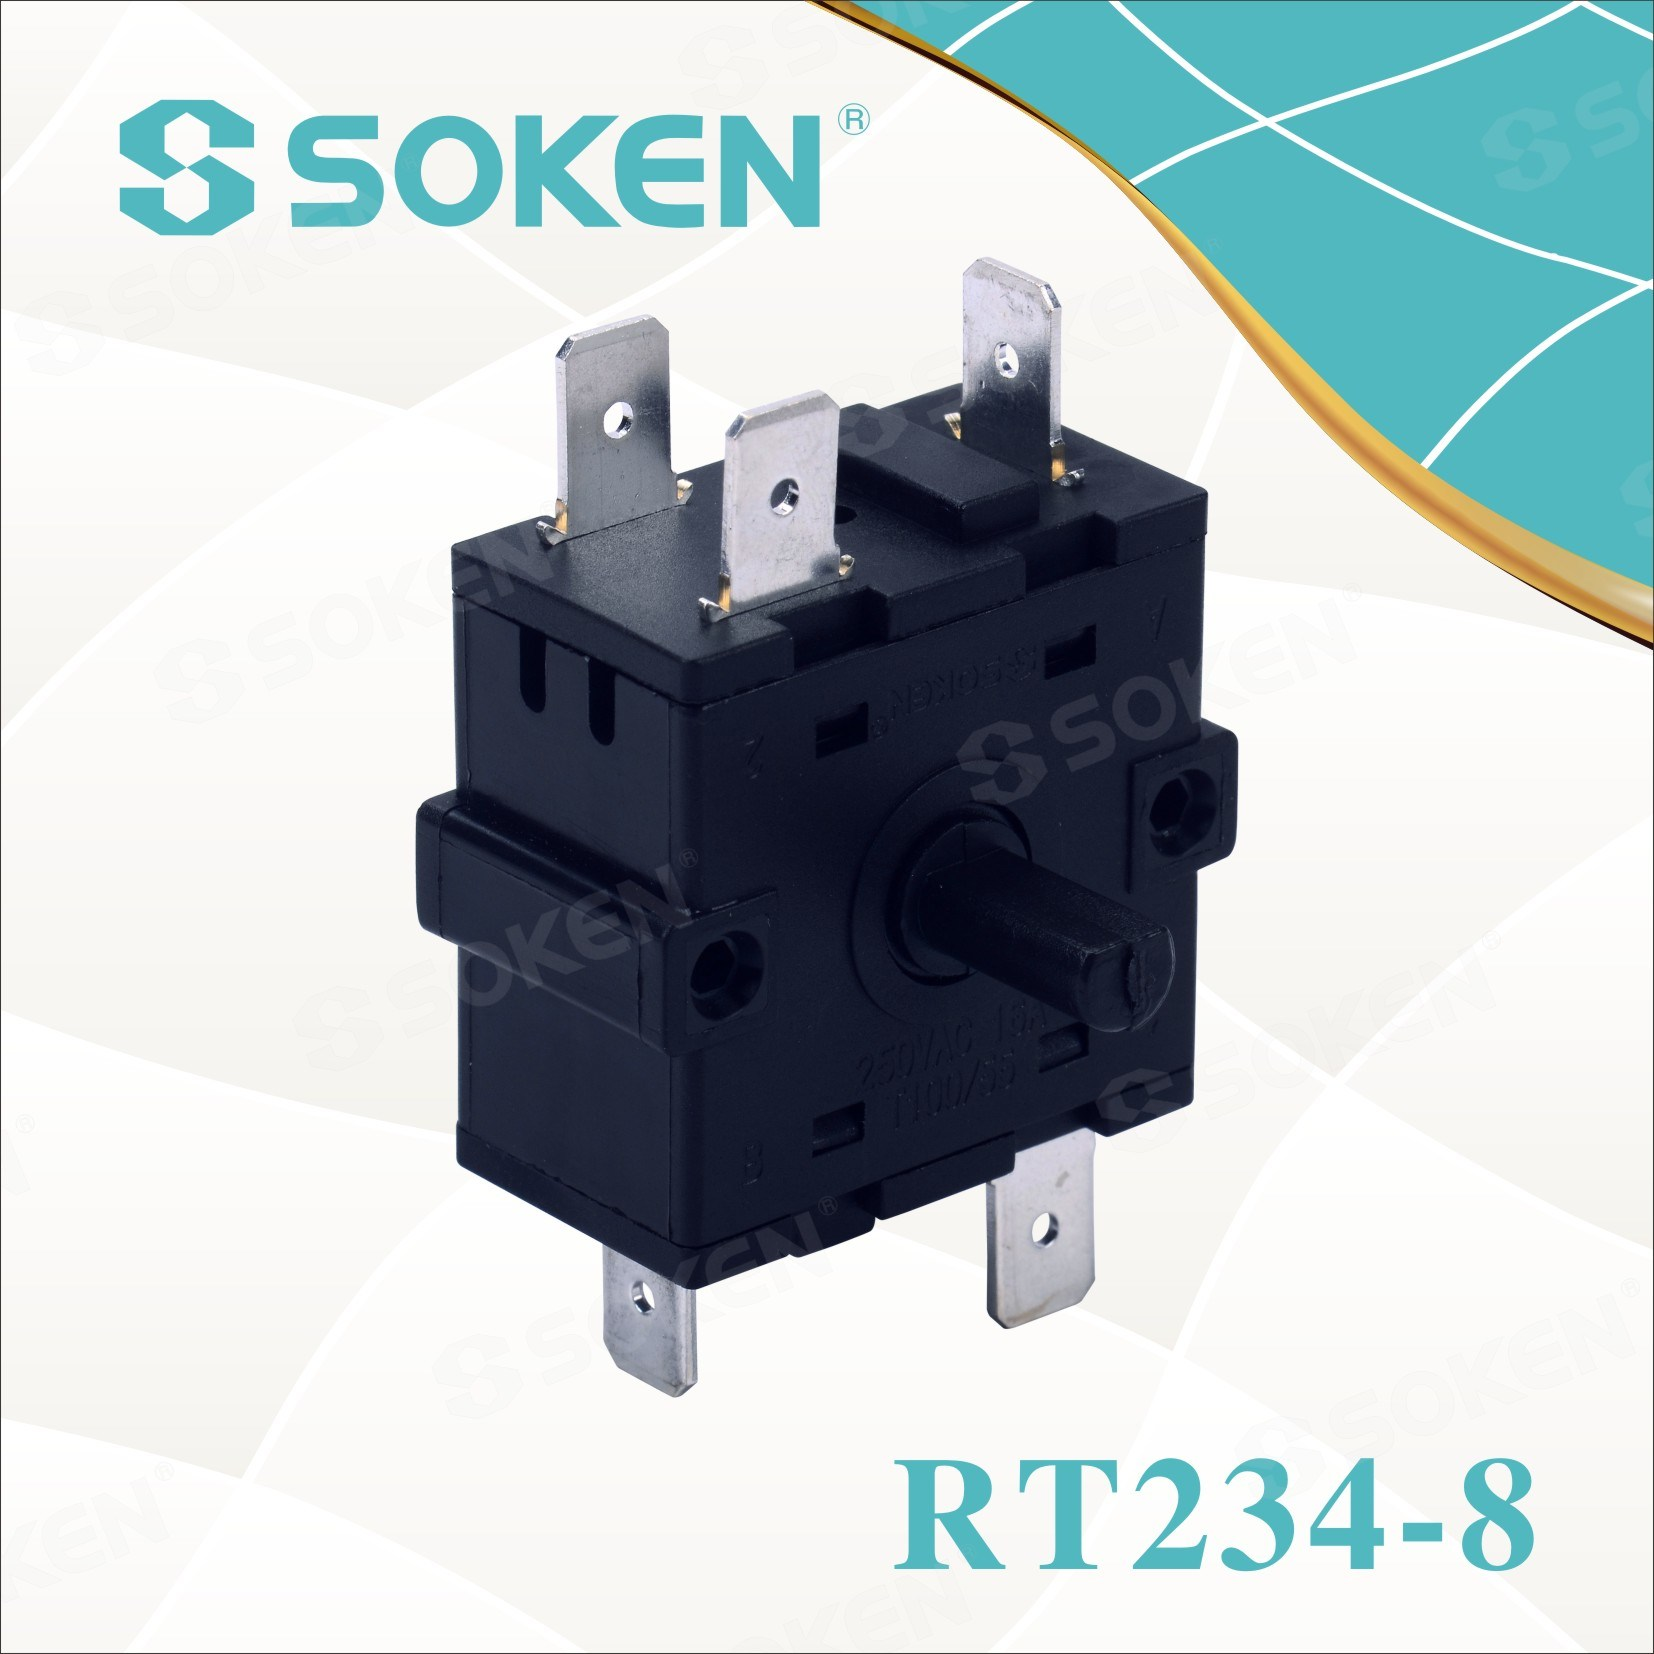 -High Temperature Cambia Giuntatura cun 4 Position (RT234-8)